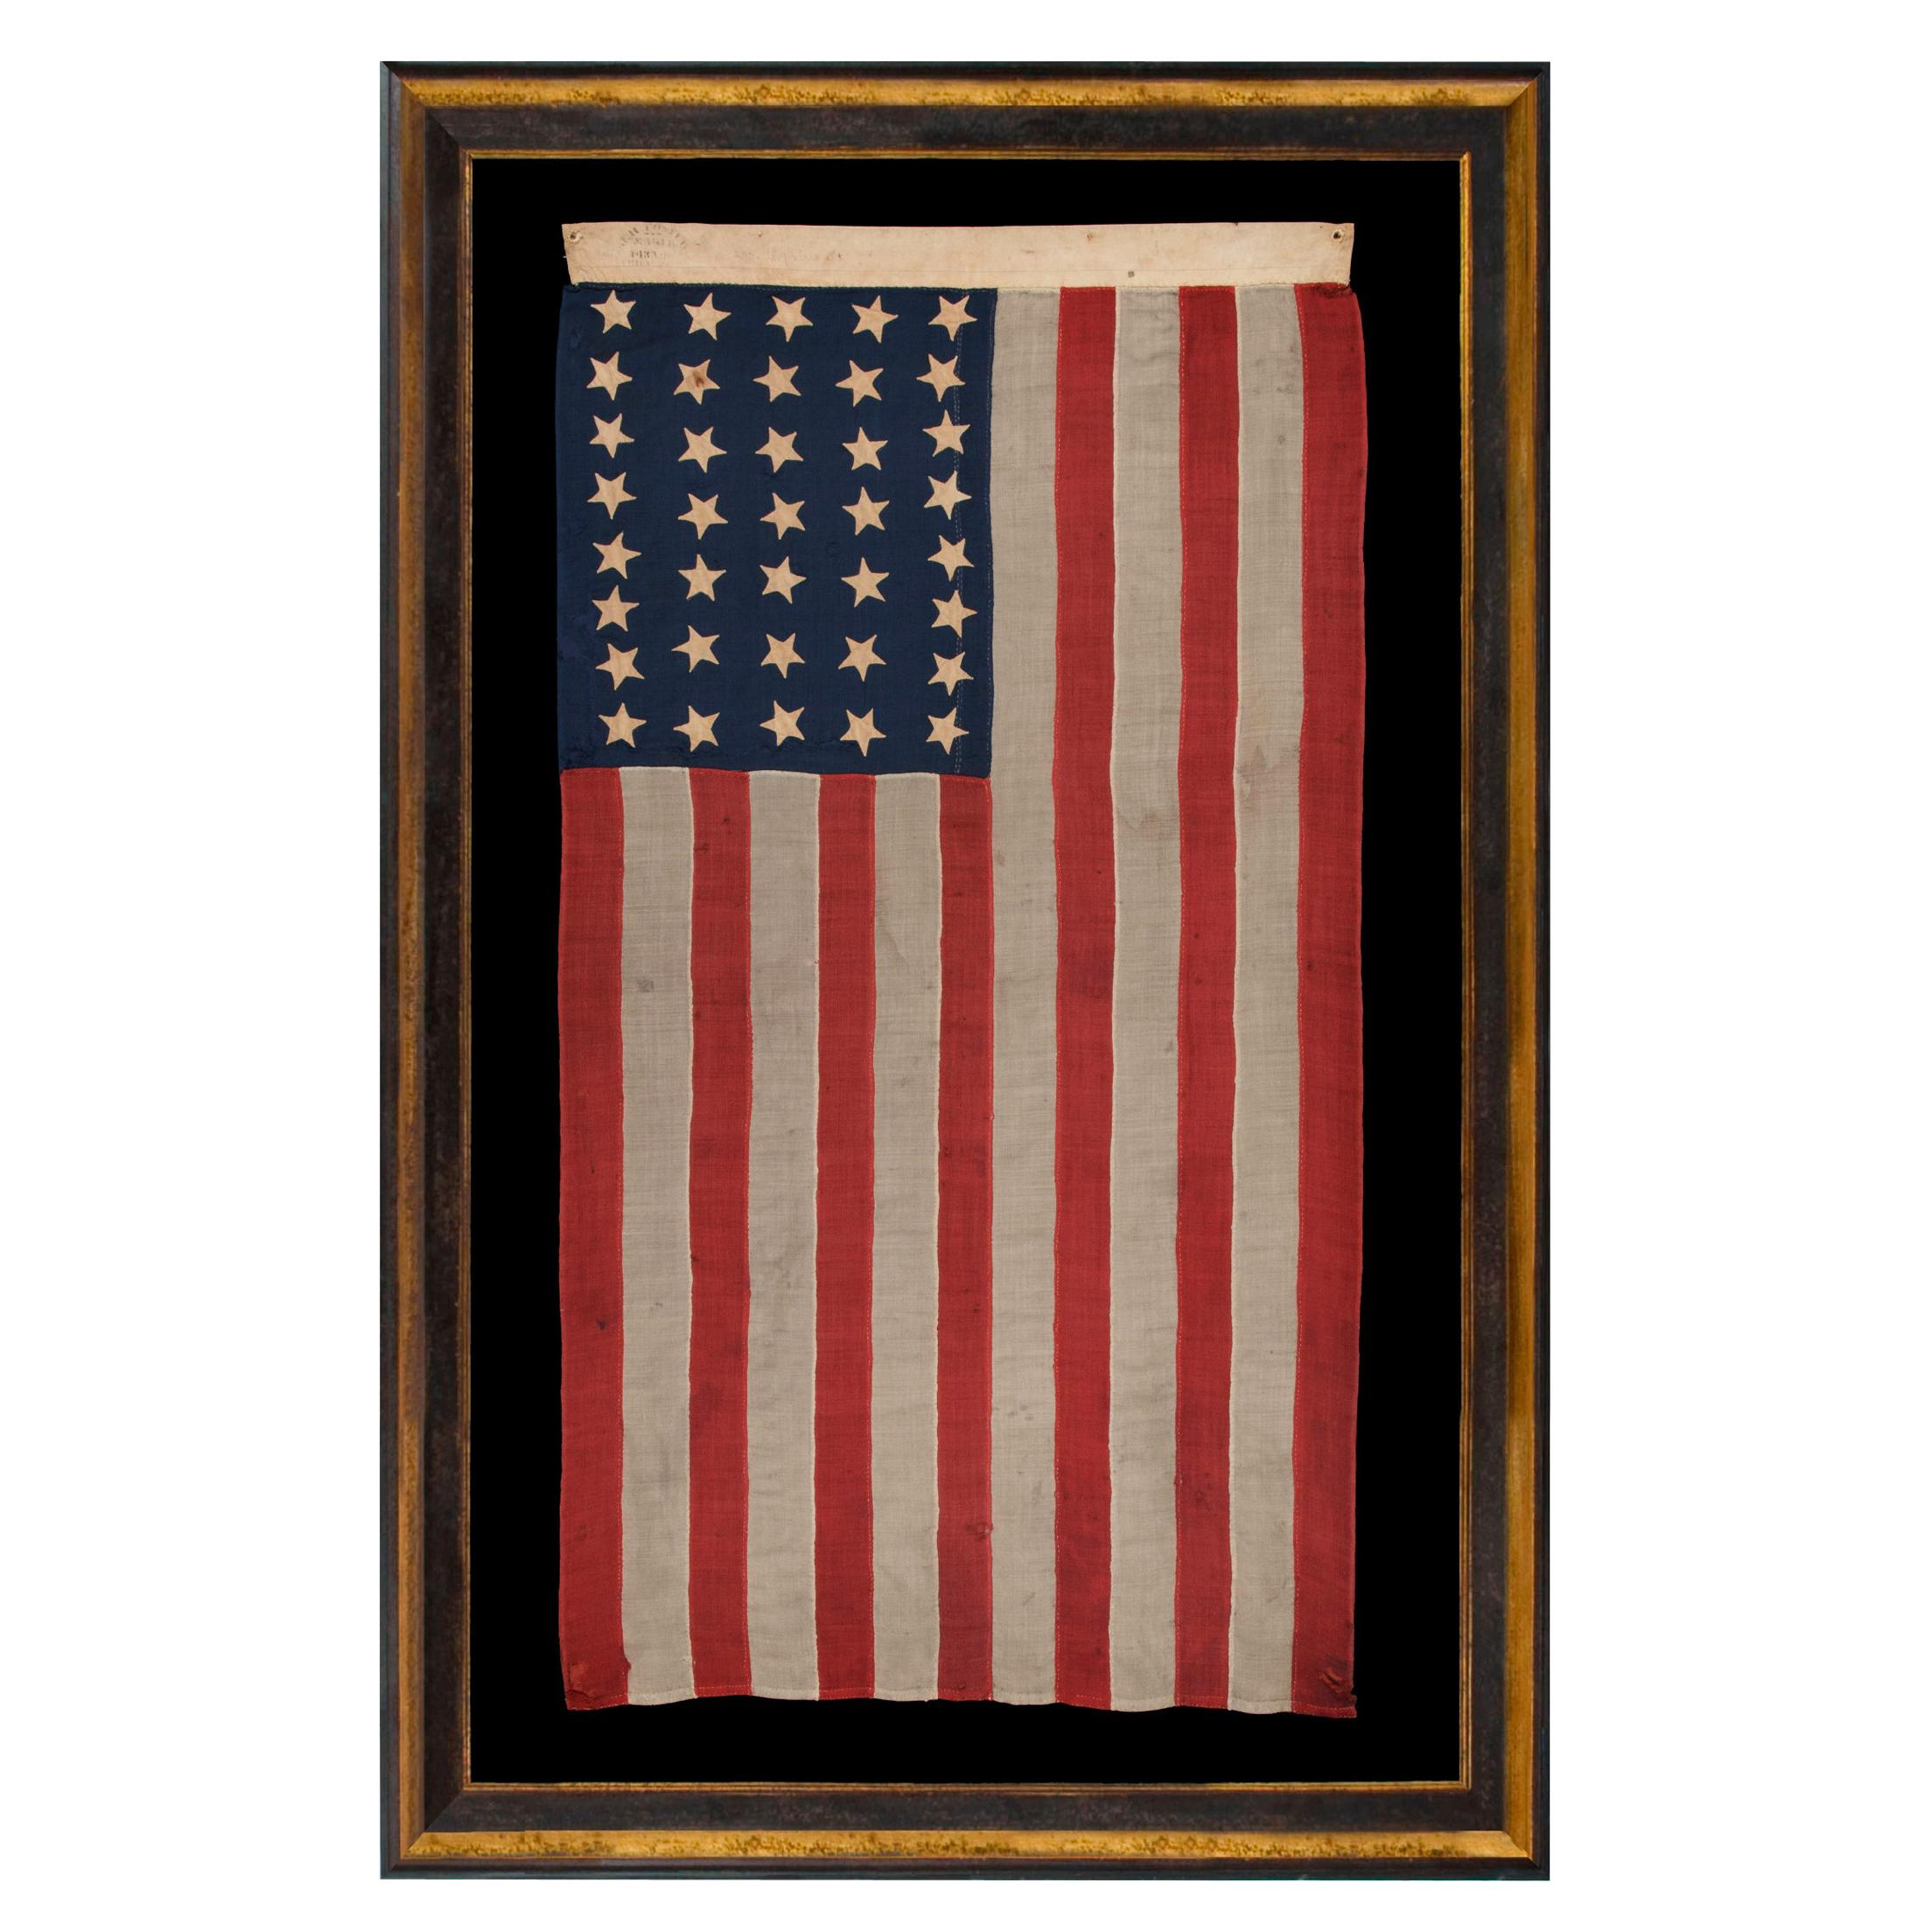 37 Star Antique American Flag, Entirely Hand Sewn, Signed Foster, Phila. 1867-76